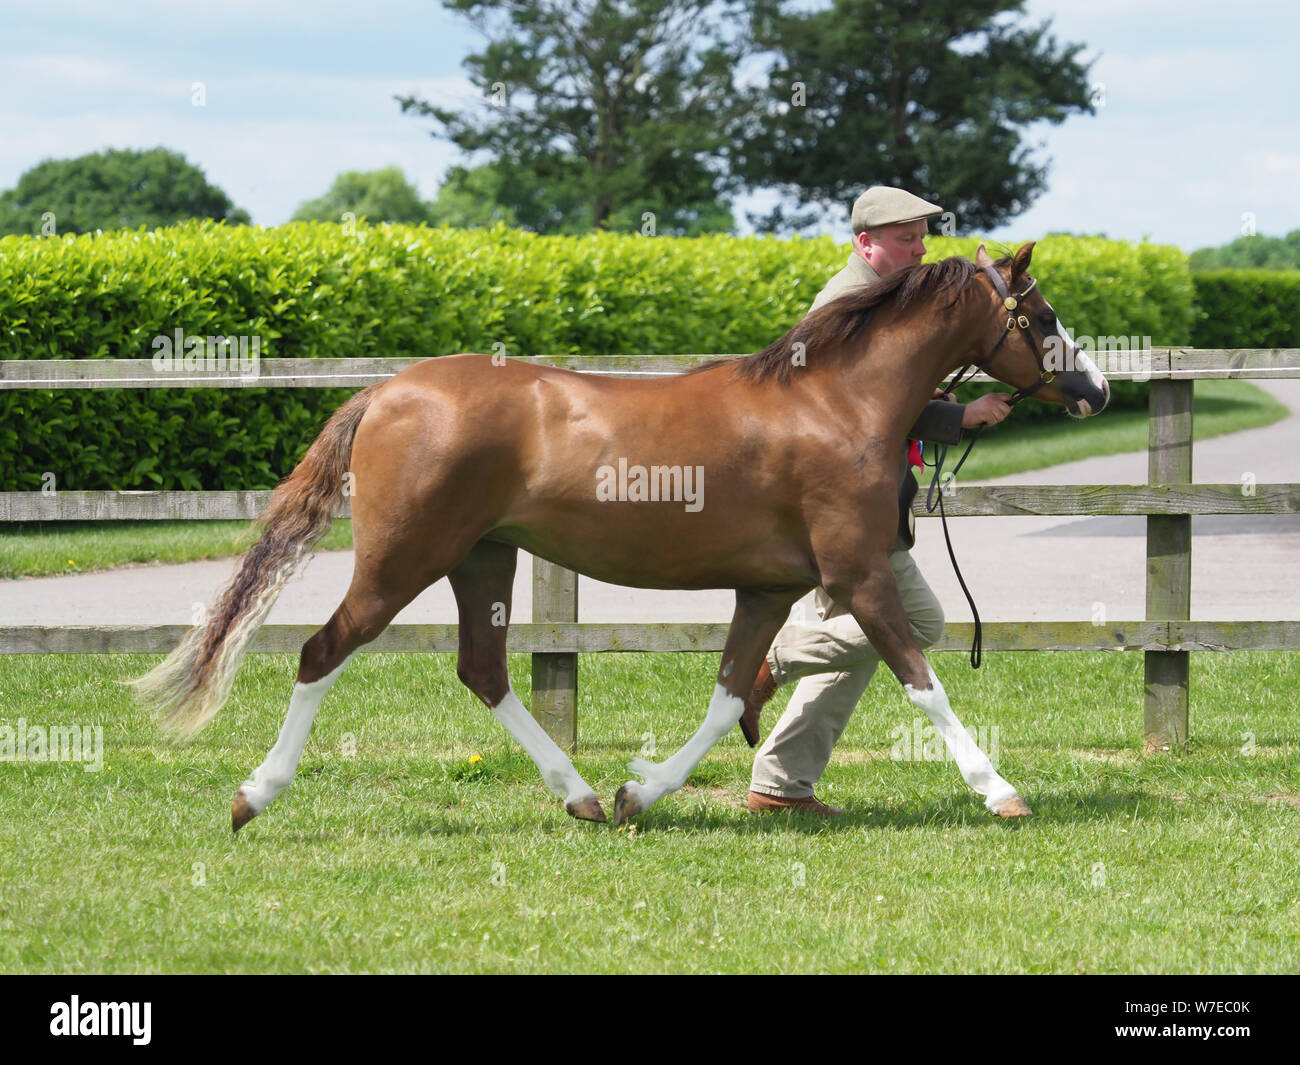 A bay Welsh Section A pony being trotted up in the show ring. Stock Photo